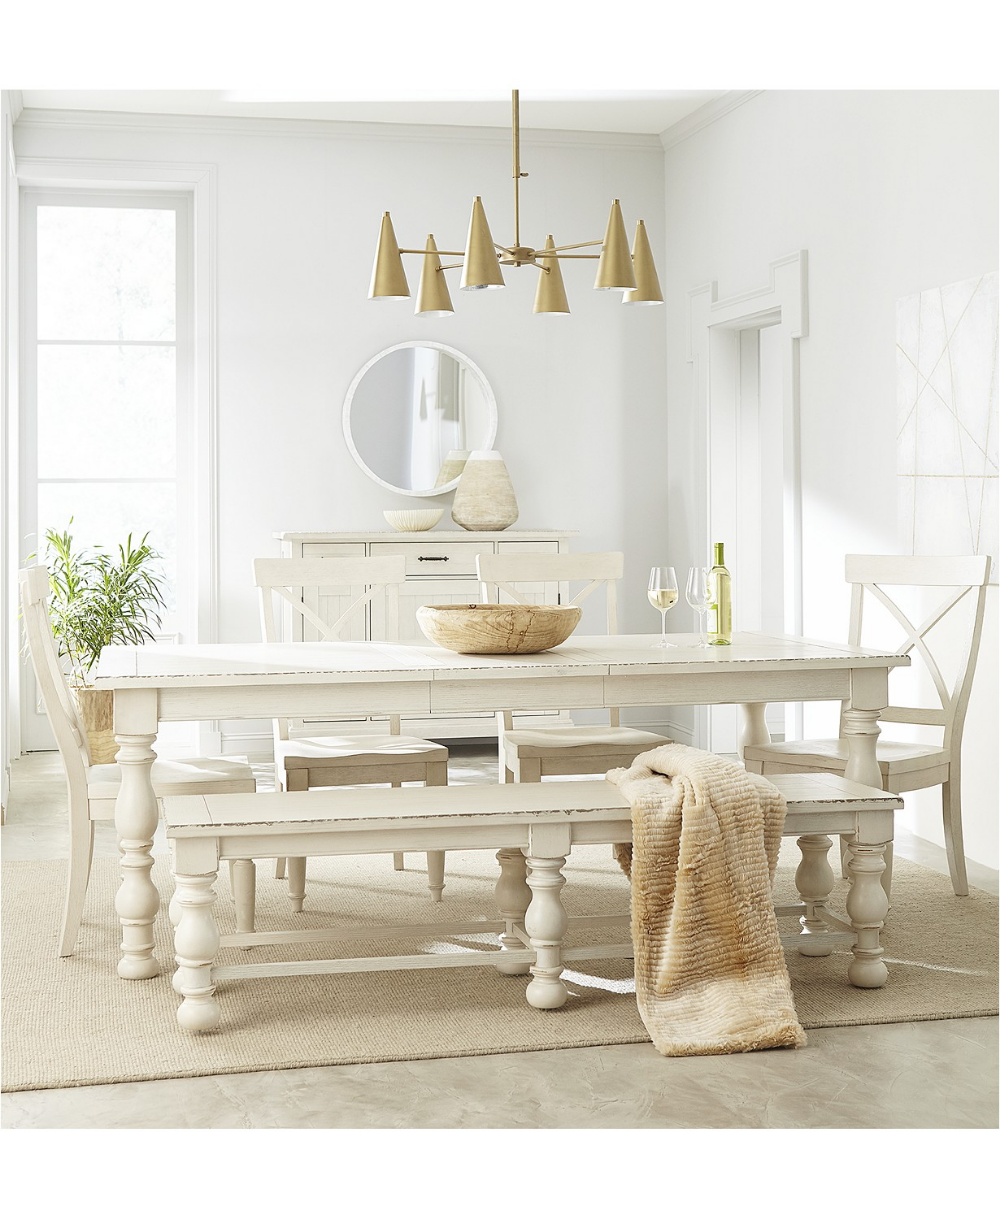 Pin On Country Rustic Dining, White Dining Room Table Bench